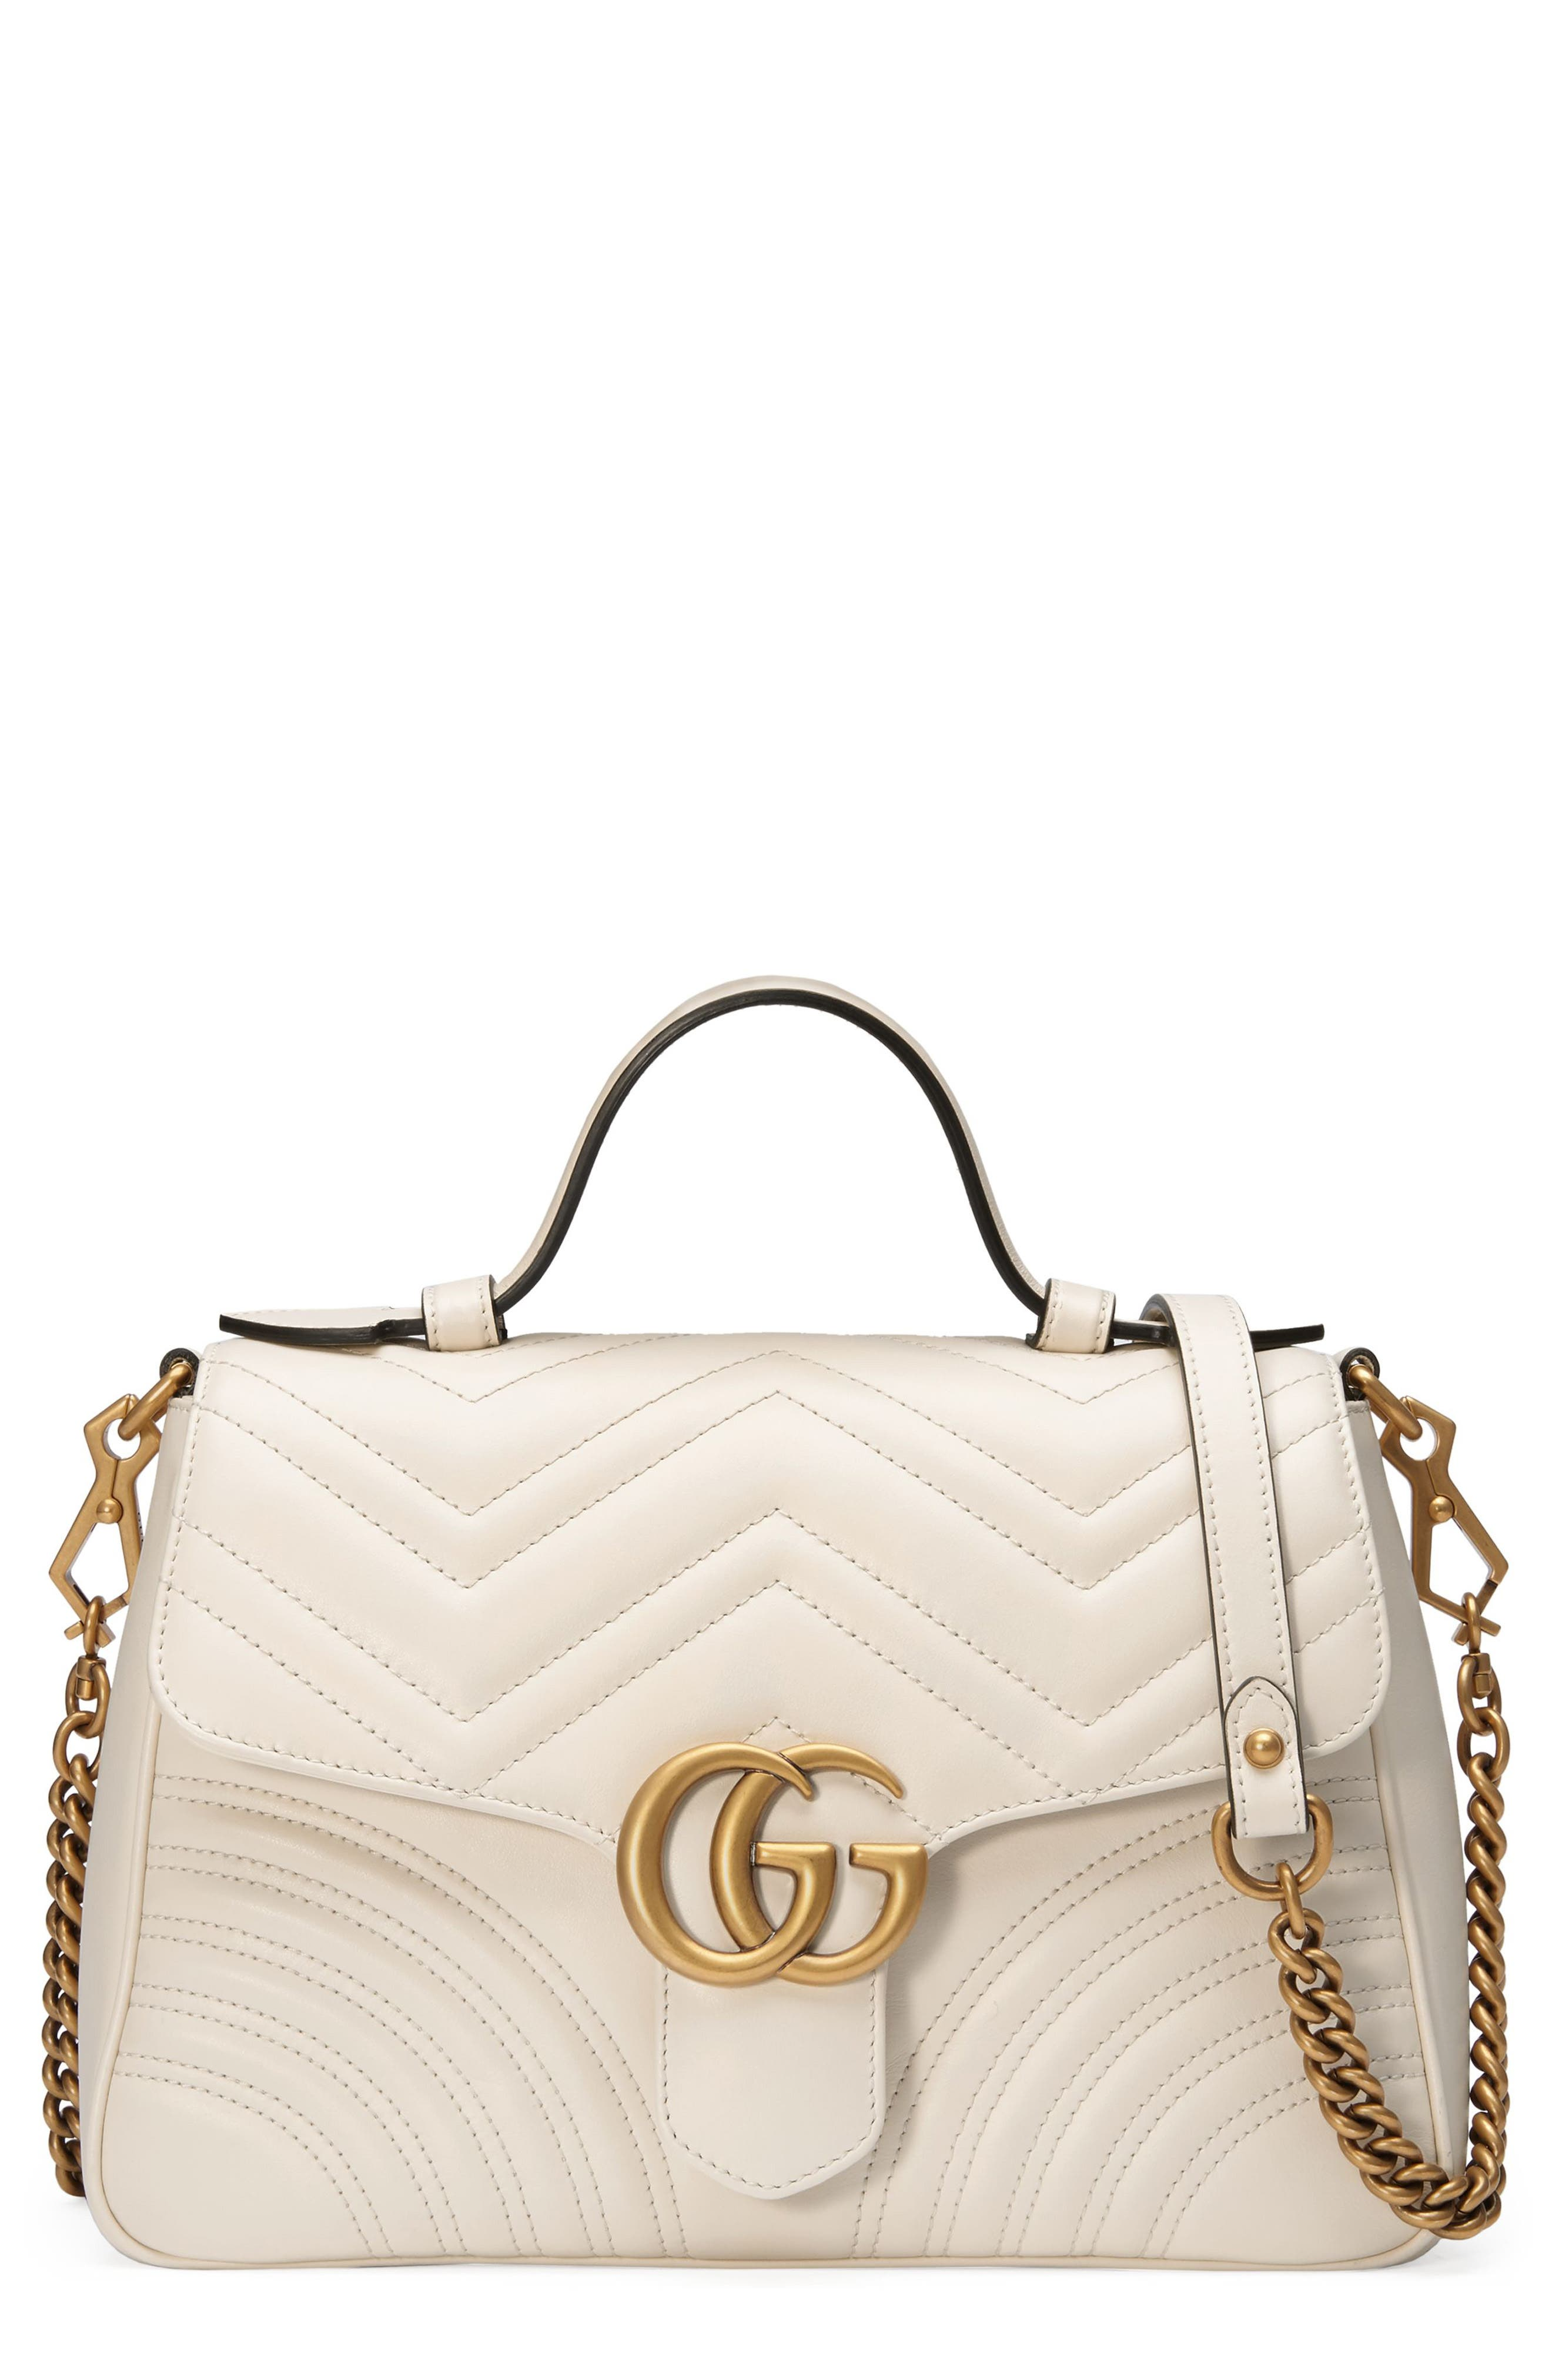 Alternate Image 1 Selected - Gucci Small GG Marmont 2.0 Matelassé Leather Top Handle Bag